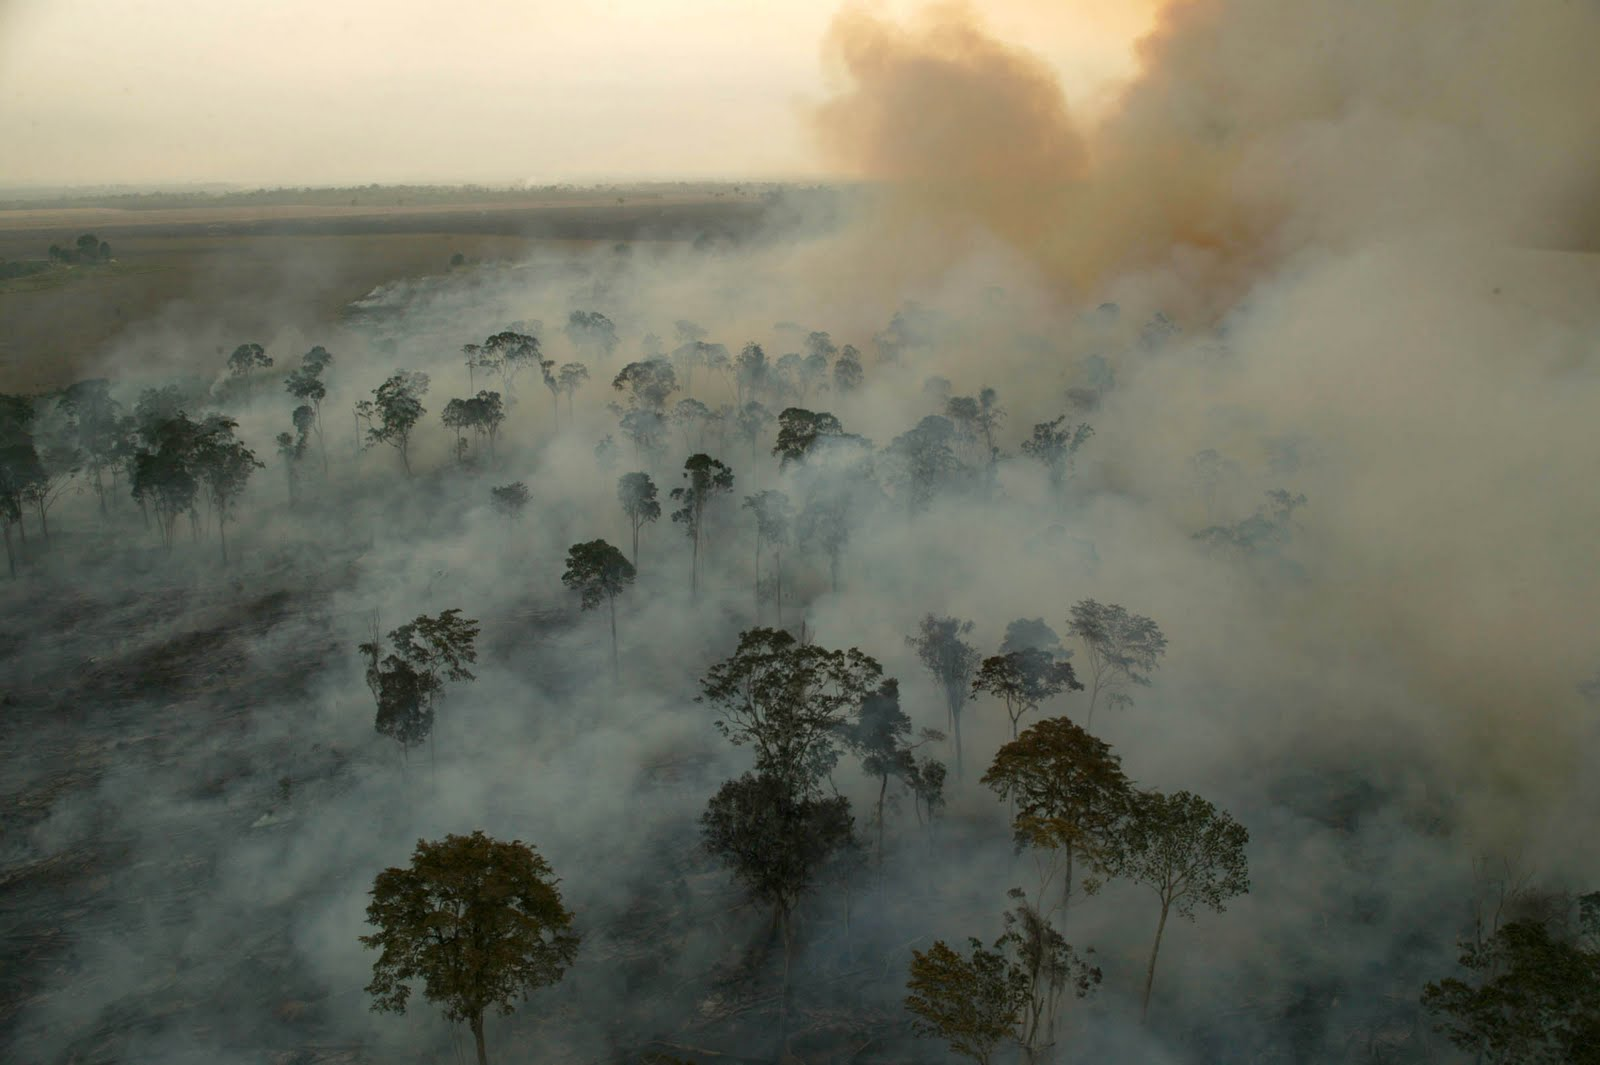 Amazon droughts could impact climate change as much as deforestation